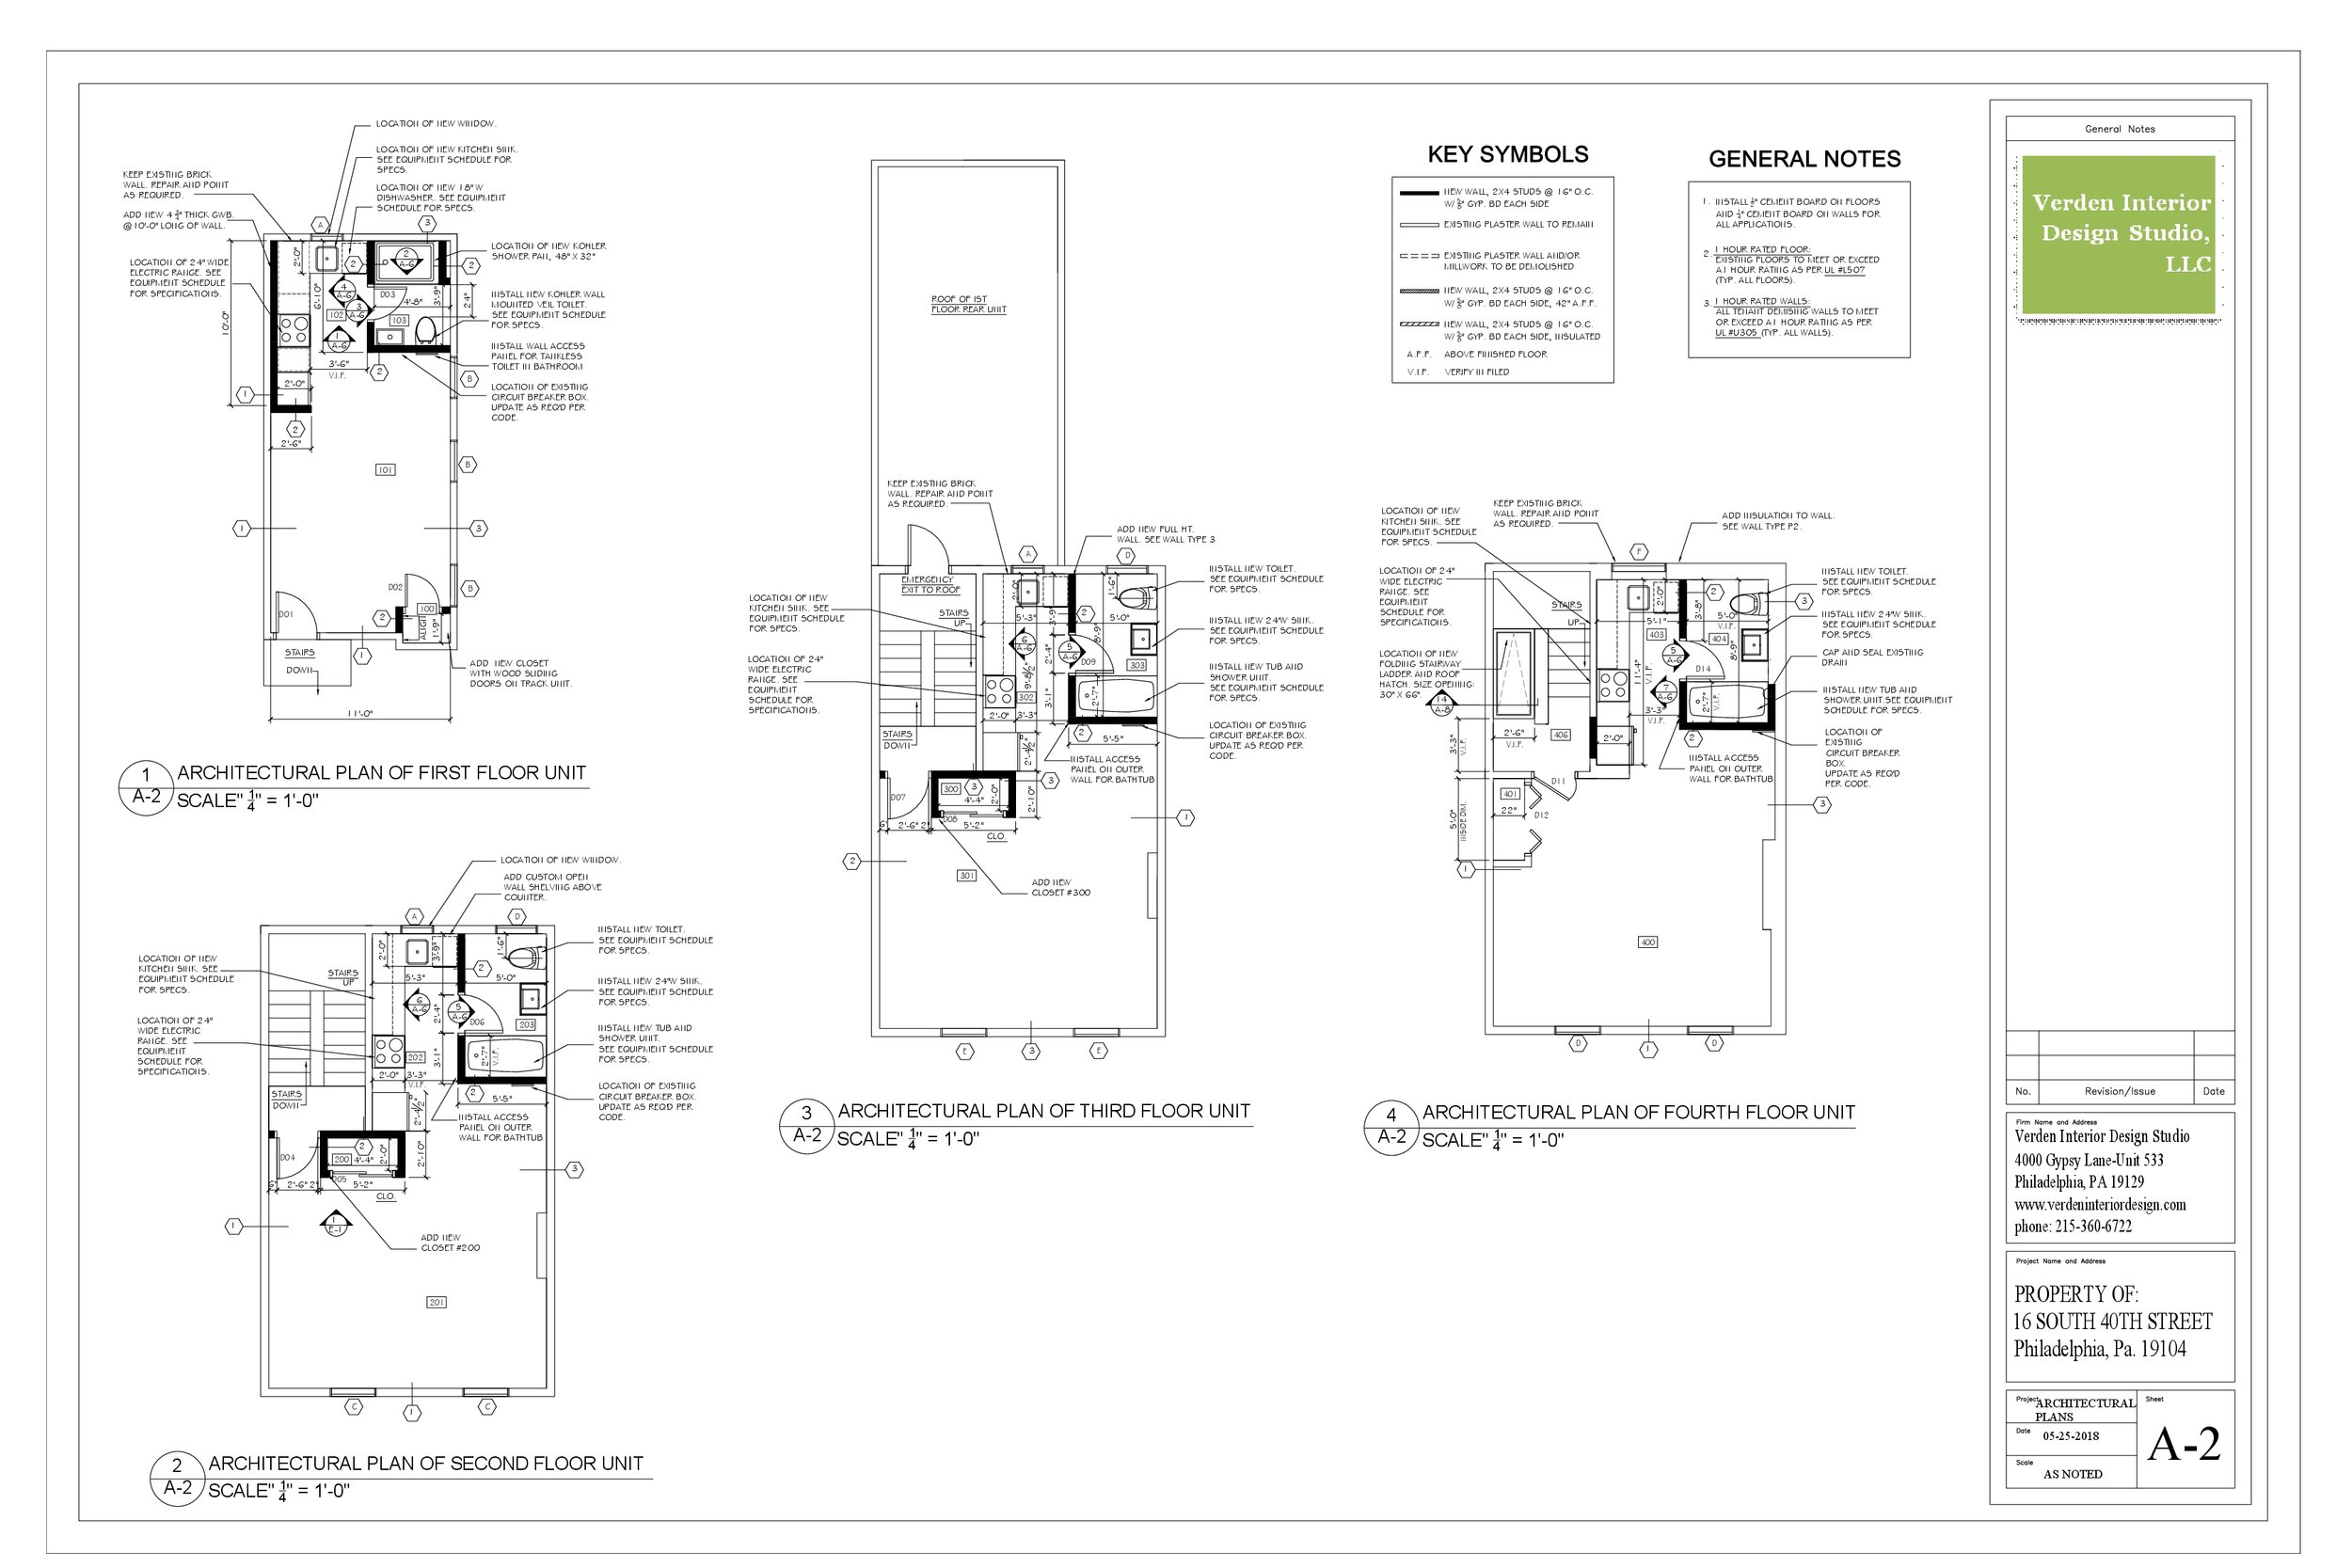 cad space plans_16south40th-A-2.jpg